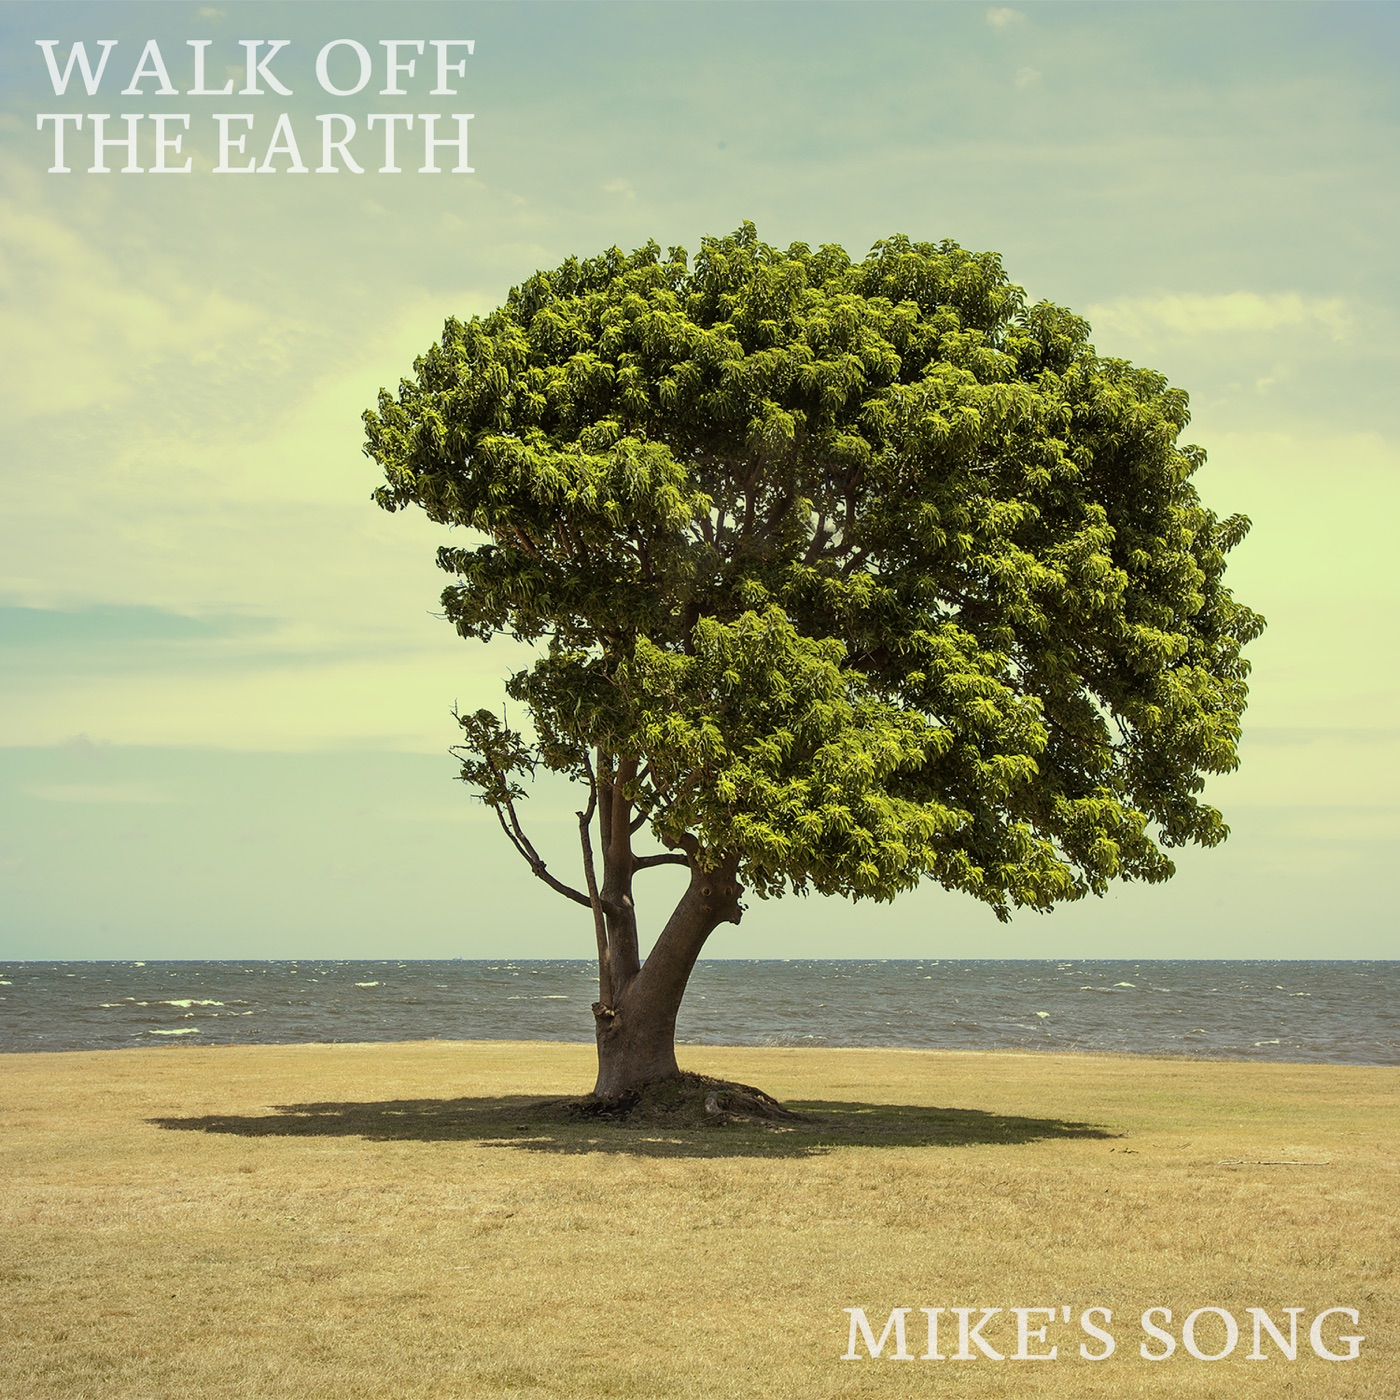 Download: Walk Off the Earth - Mike's Song - Single [iTunes Plus AAC